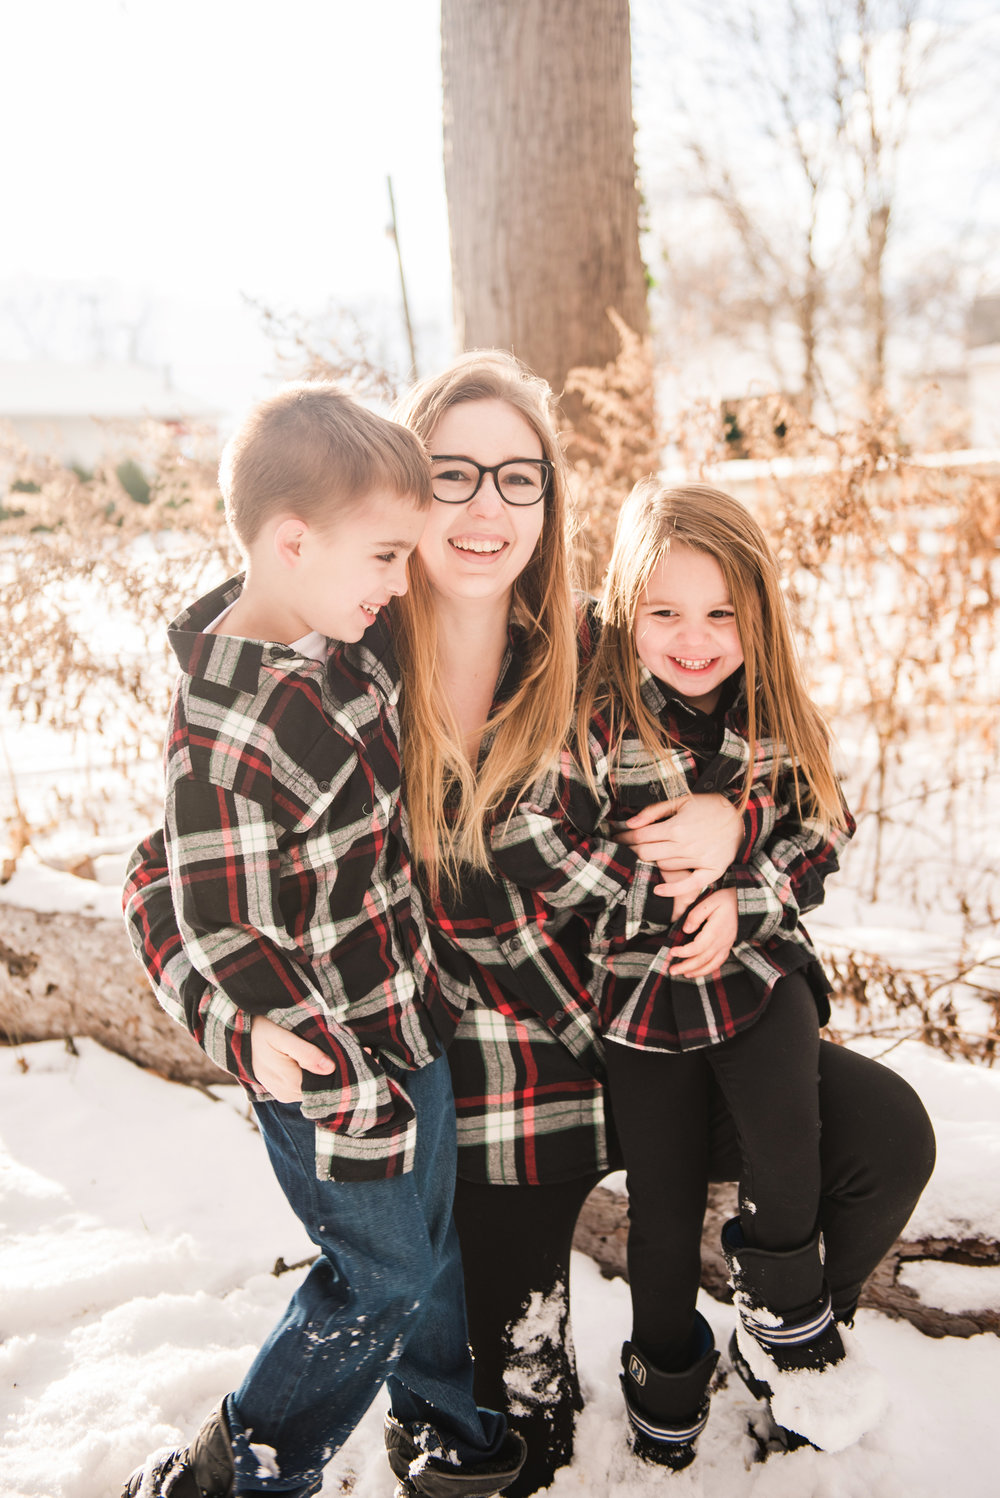 Petes_Tree_FarmRochester_Family_Session_JILL_STUDIO_Rochester_NY_Photographer_160915.jpg